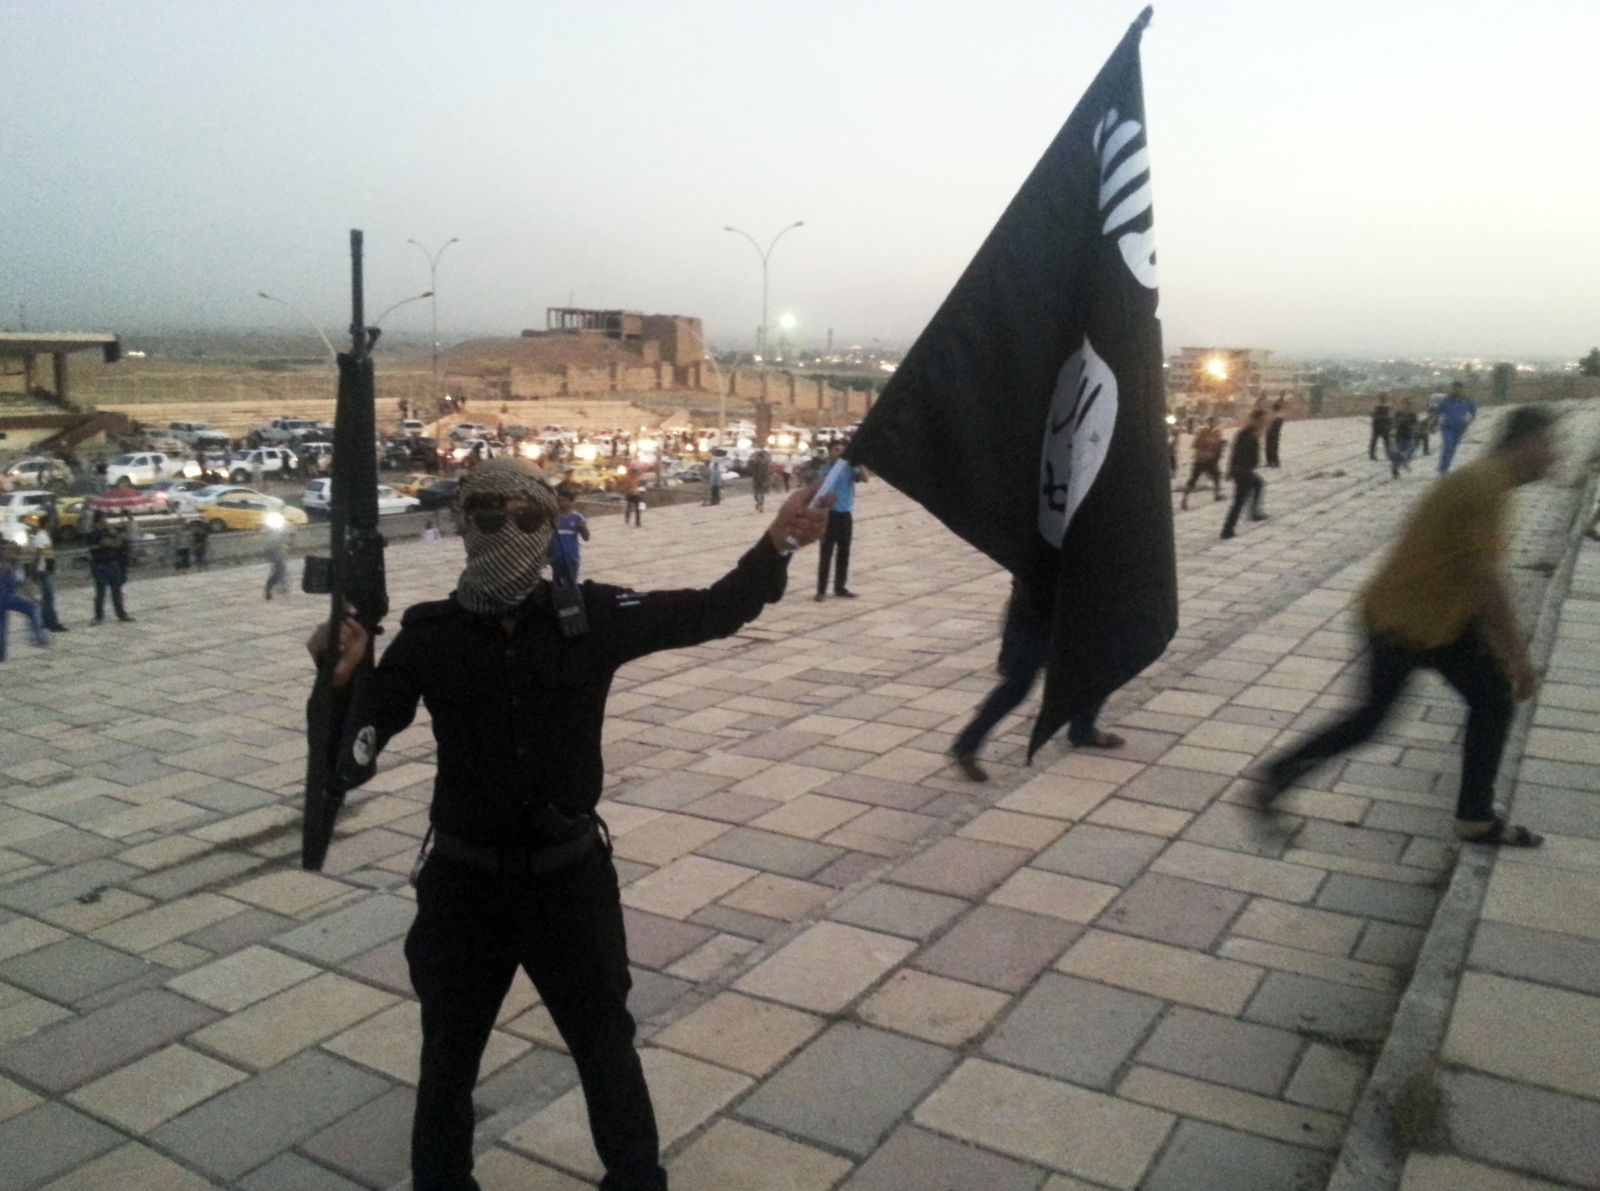 A fighter of the Islamic State holds an Isil flag and weapon.